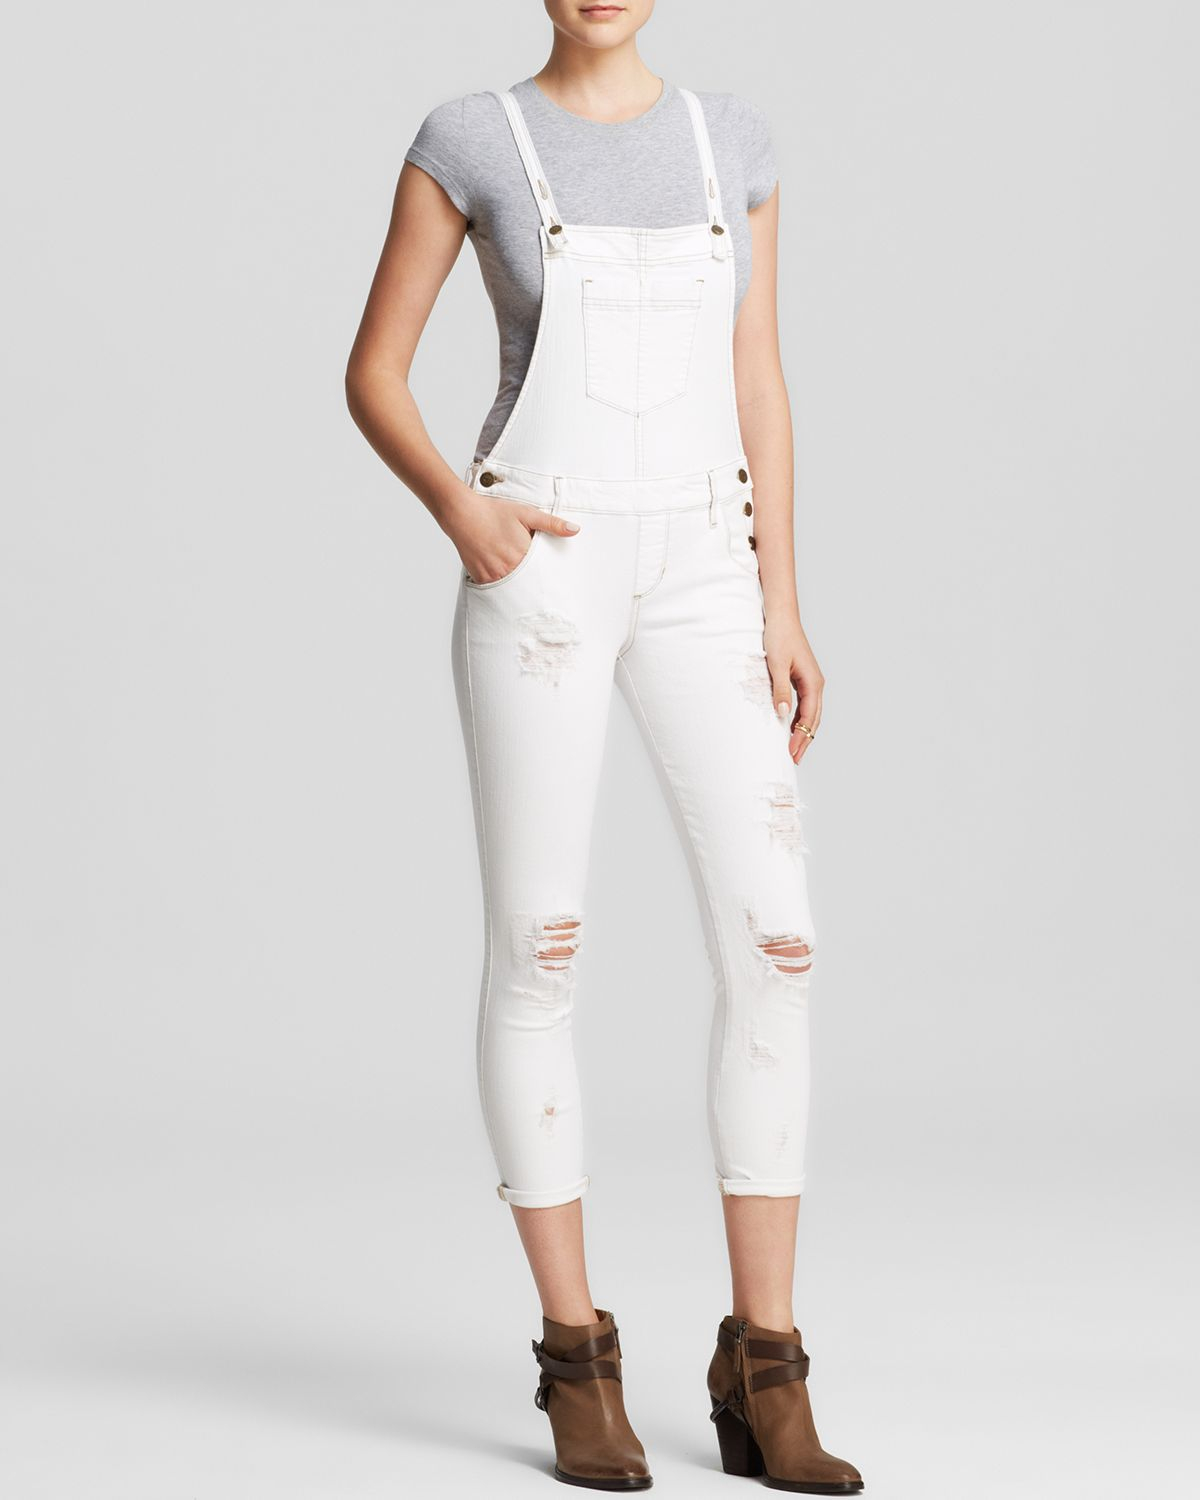 684881a6a0b4 Lyst - Guess Overalls - Carlie Slim In True White With Destroy in White